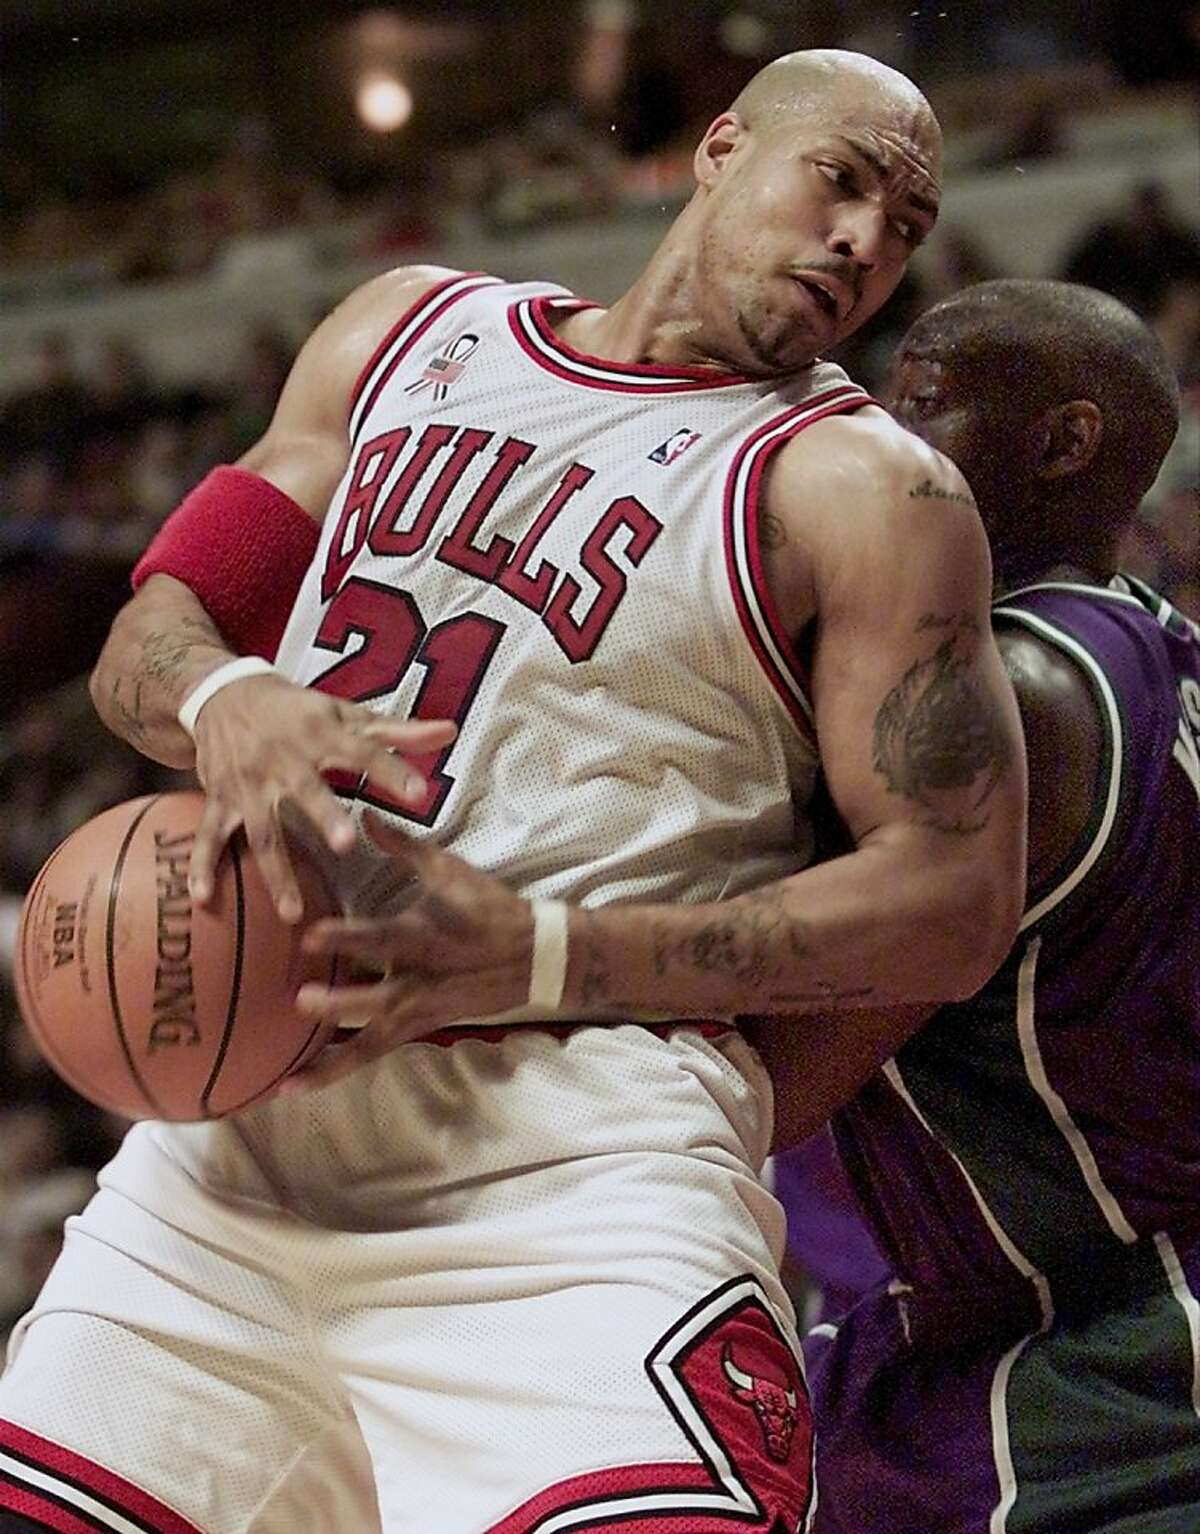 Chicago Bulls forward Marcus Fizer (L) is fouled from behind by Milwaukee Bucks forward Anthony Mason (R) in the fourth quarter in Chicago, December 31, 2001. Chicago won the game, 90-83. REUTERS/Sue Ogrocki